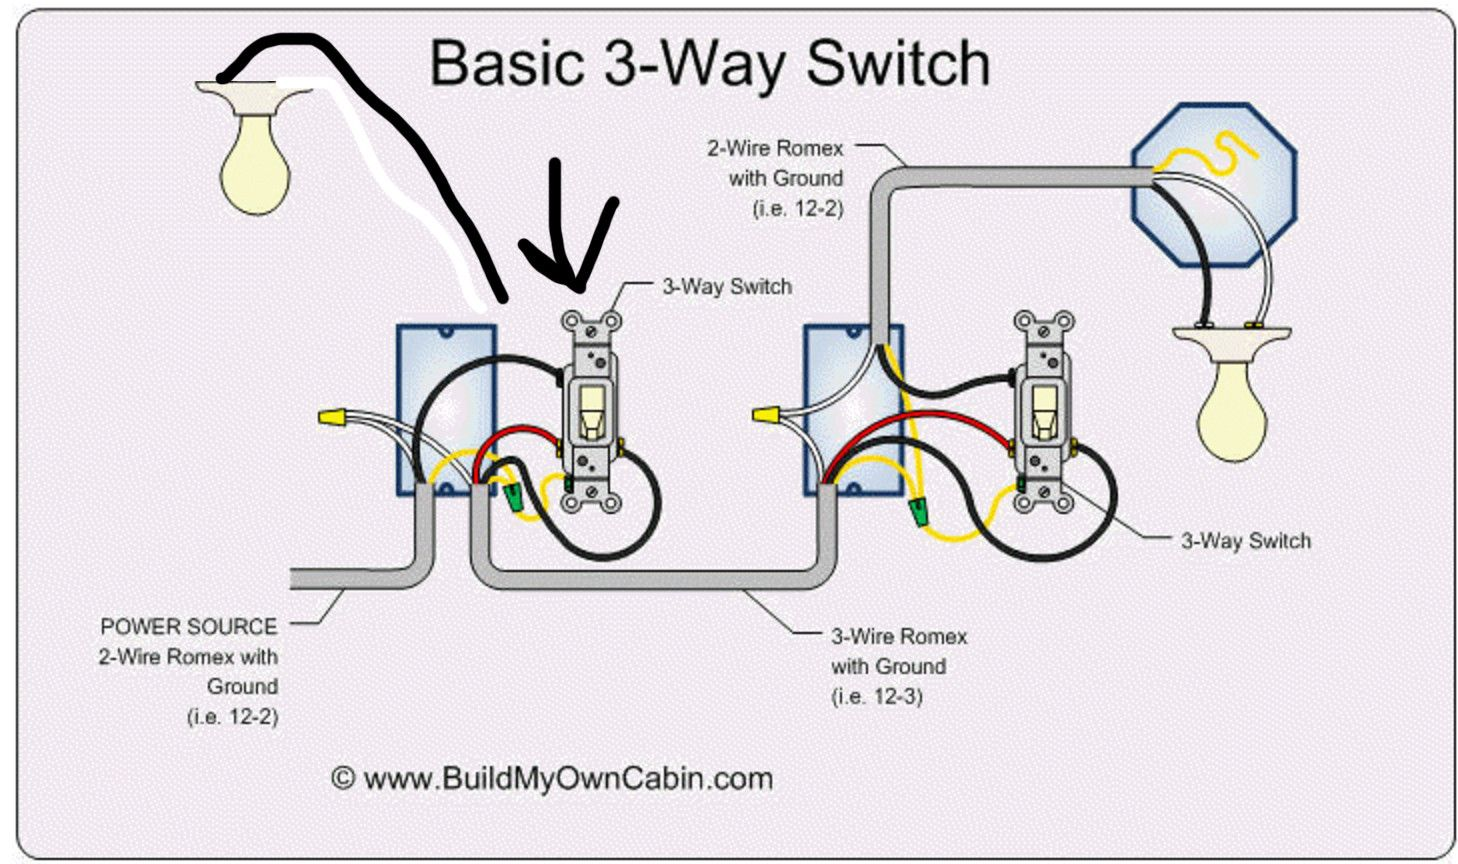 Wiring Diagram For 3 Way Switch With 4 Lights 1uizp | 3 way switch wiring,  Light switch wiring, Wire switchPinterest